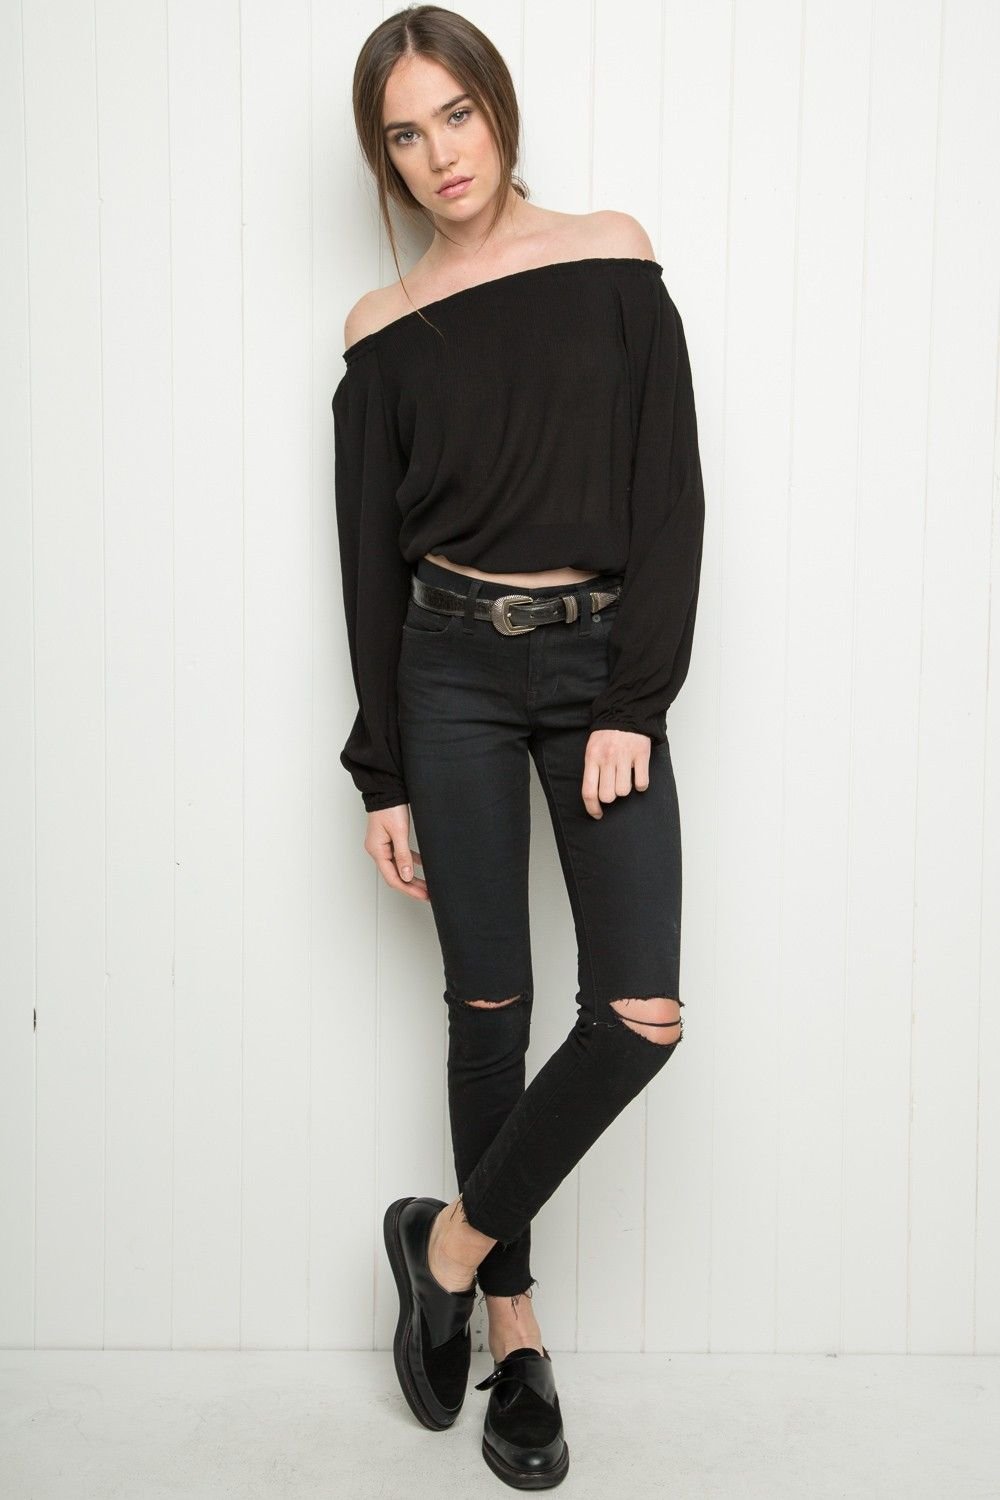 Brandy ♥ Melville   Olympia Top - Just In